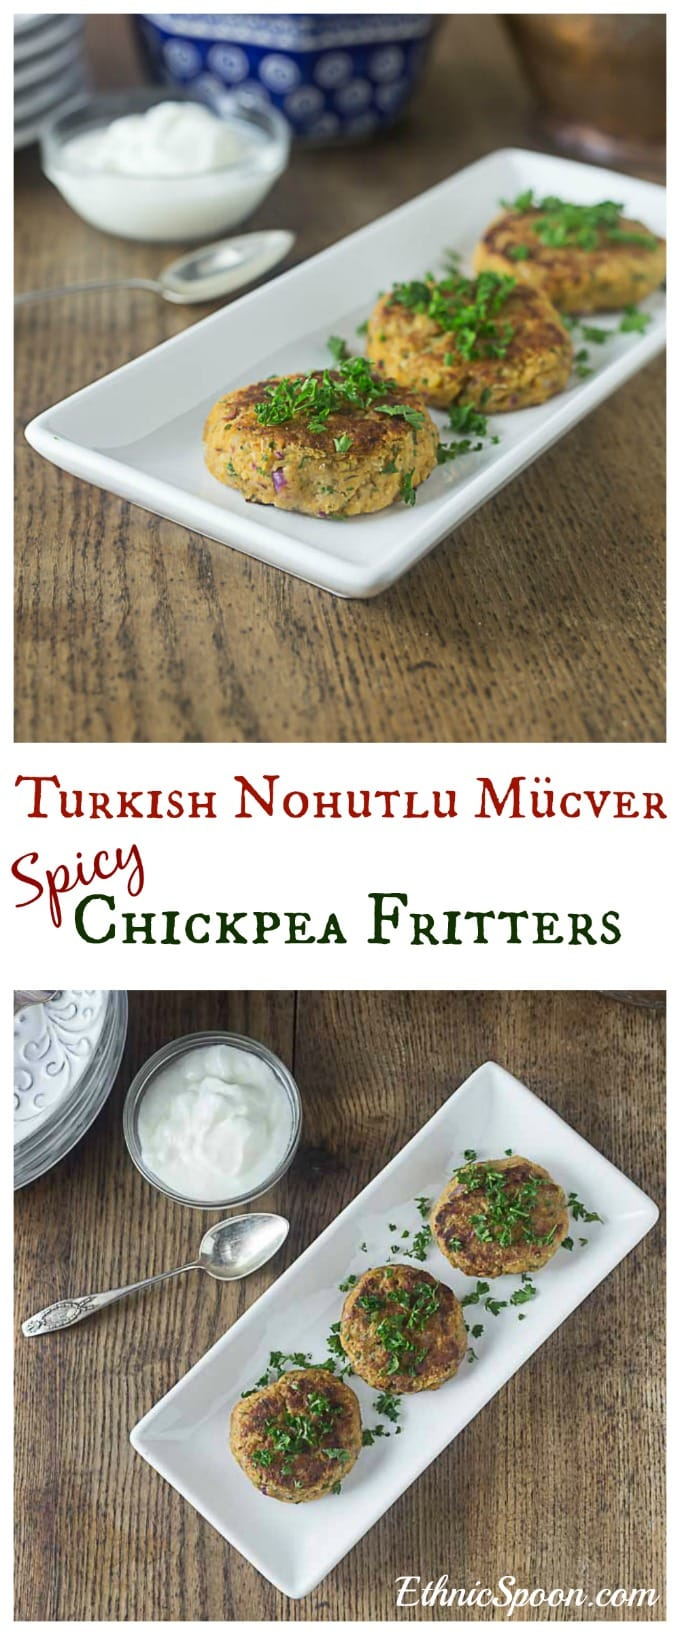 Easy and exotic Turkish nohutlu mücver: Spicy chickpea fritters or burgers | ethnicspoon.com #chickpeaburgers #veganburgers #turkishfood